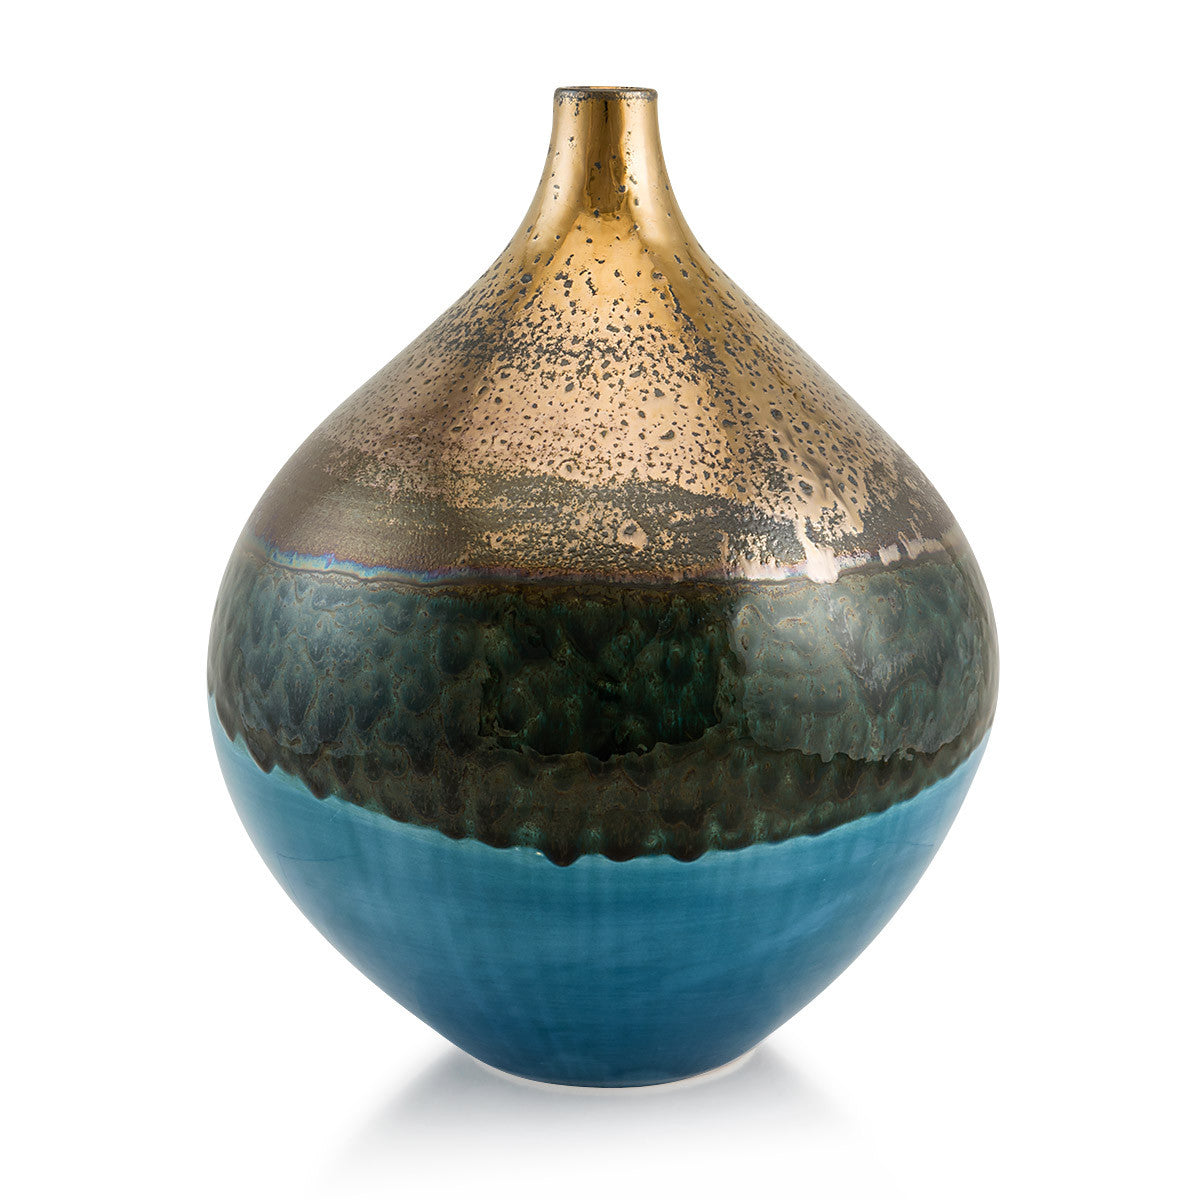 Ceramic teardrop vase | Blue and bronze